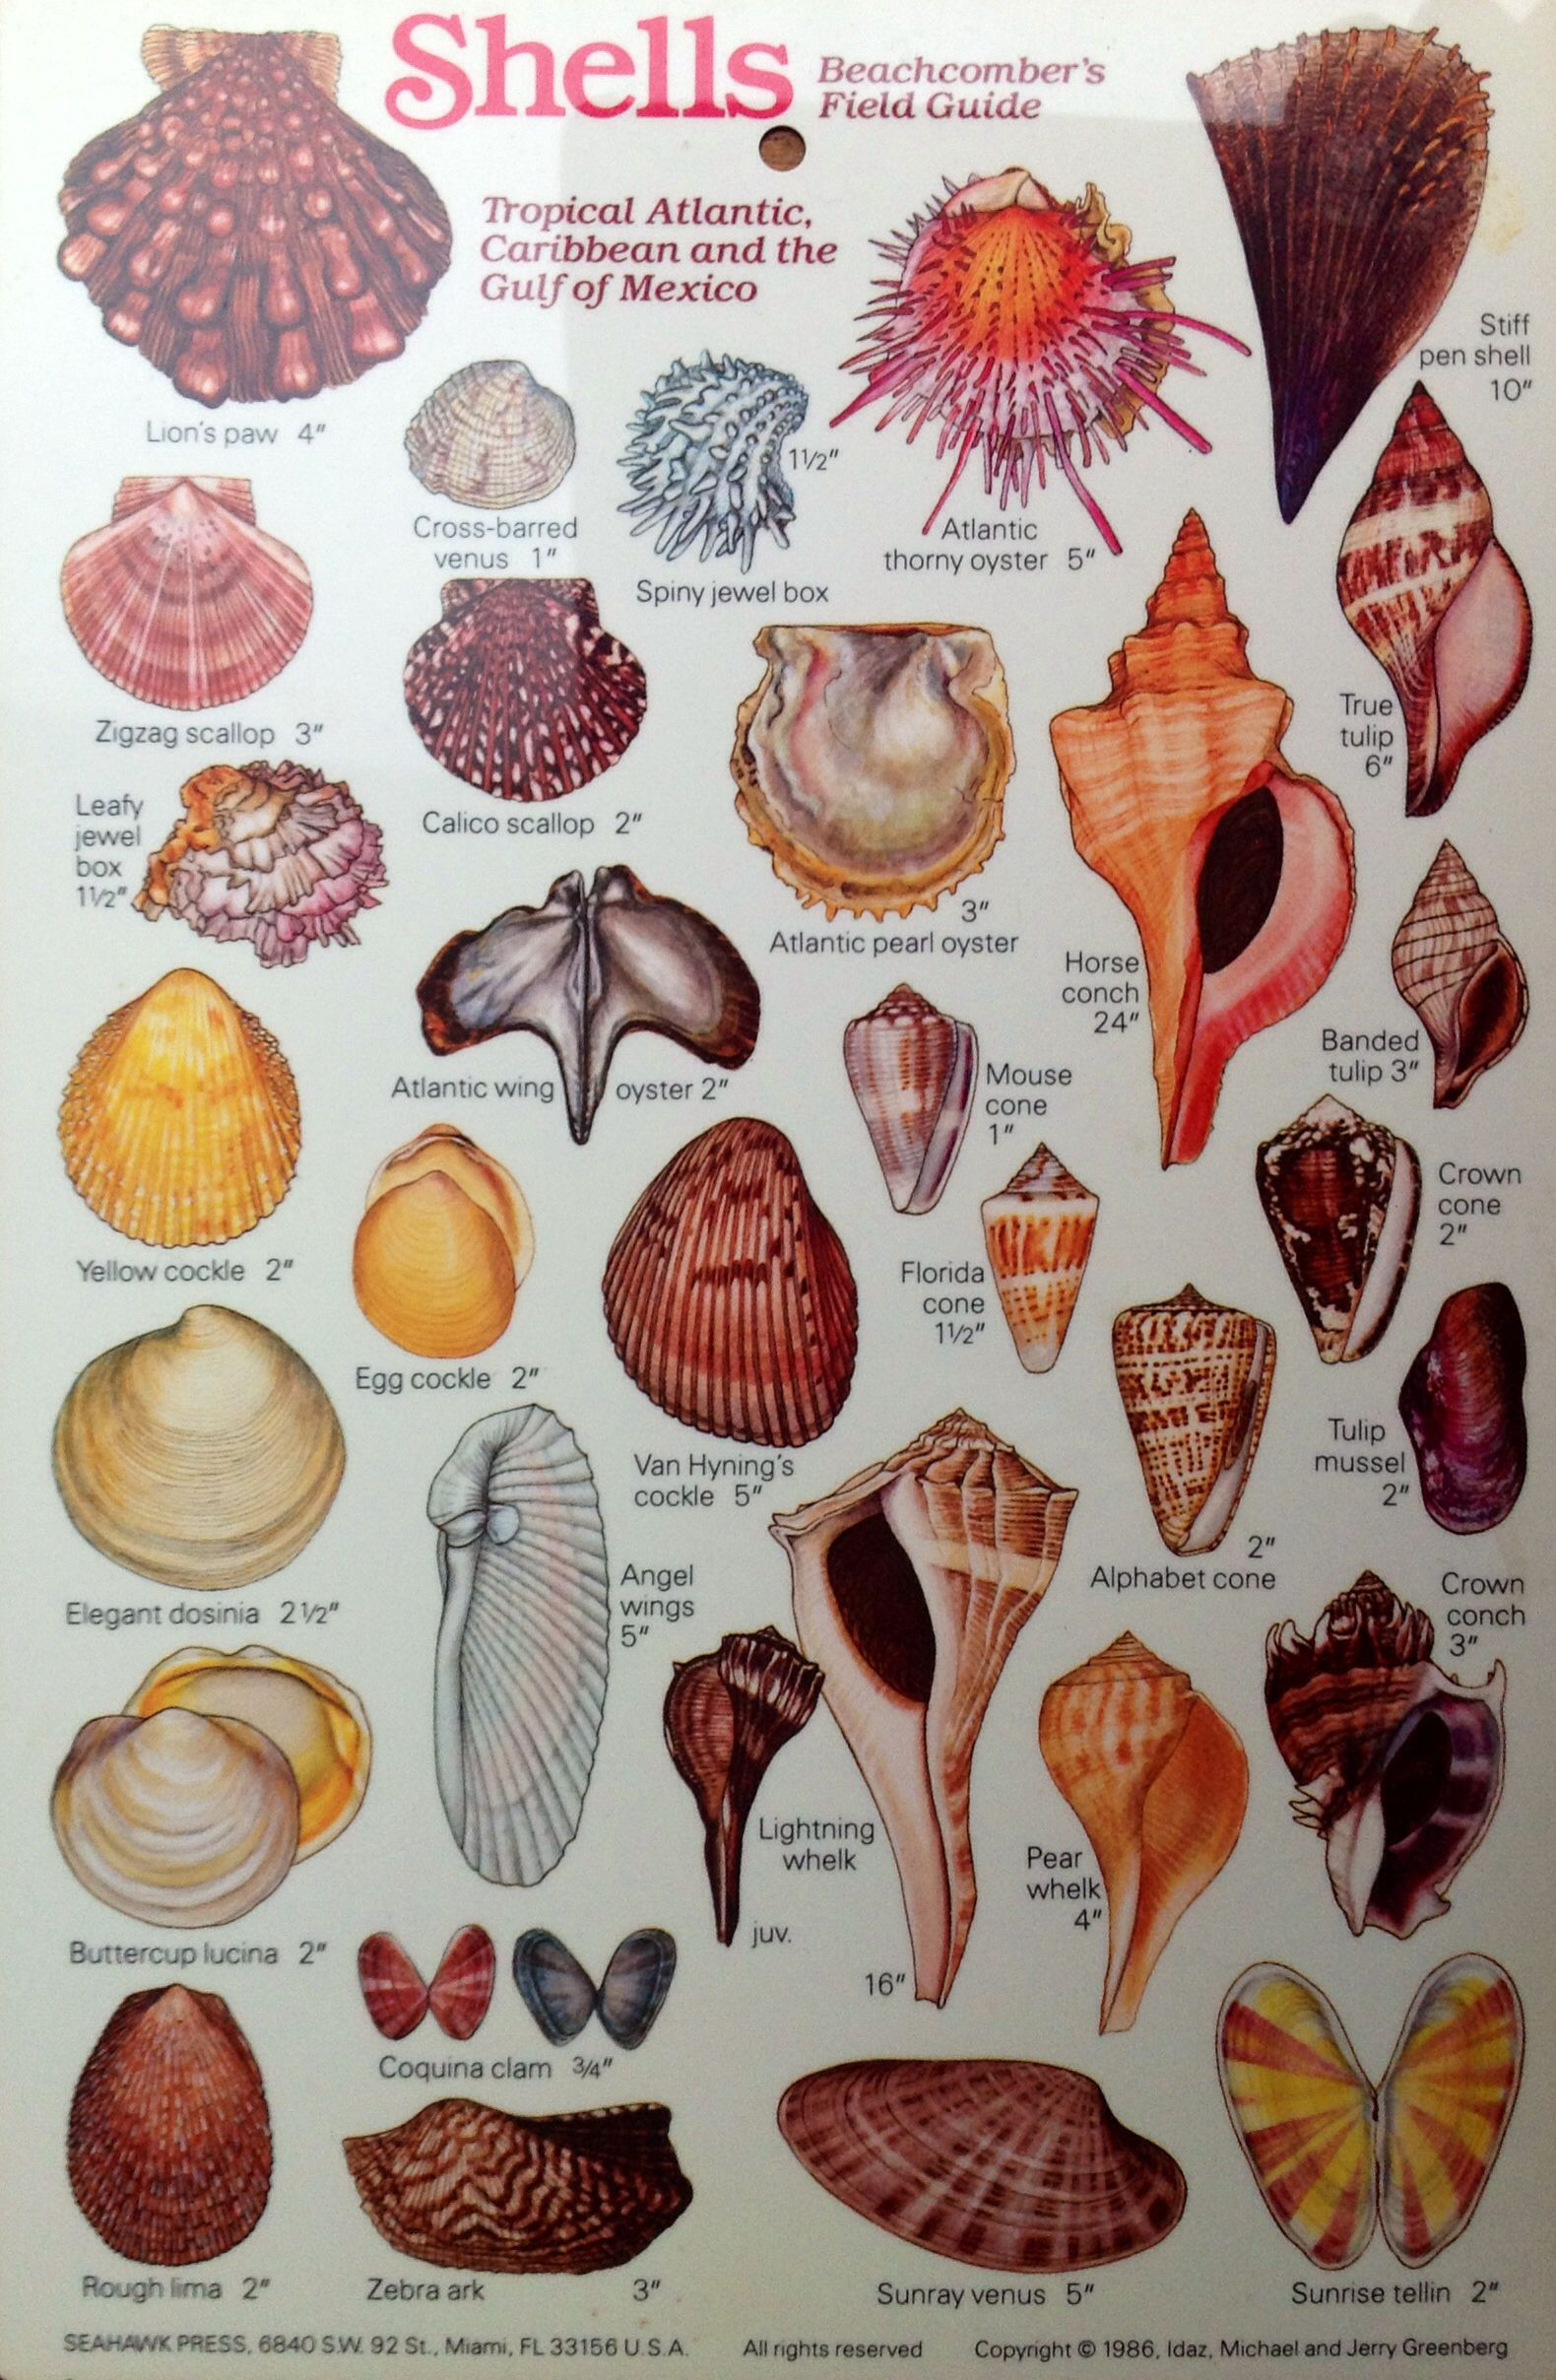 Tropical atlantic caribbean and the gulf of mexico beachcombers tropical atlantic caribbean and the gulf of mexico beachcombers field guide shells i fandeluxe Choice Image